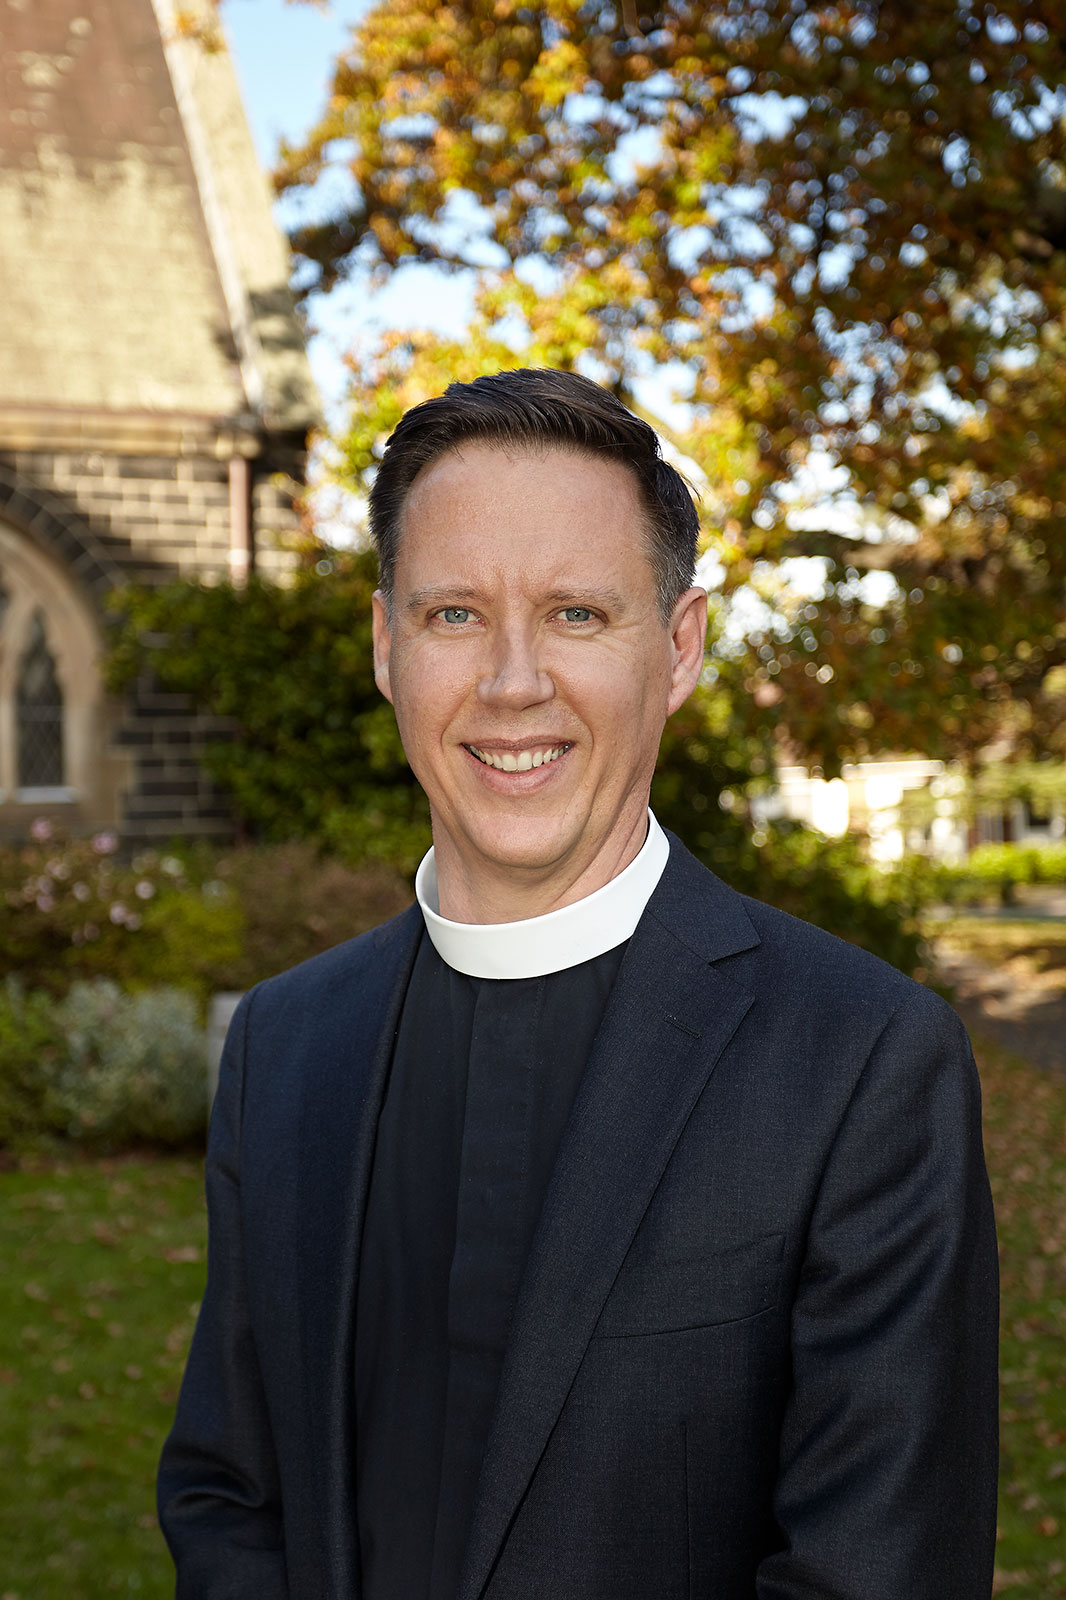 The Revd Dr Peter French